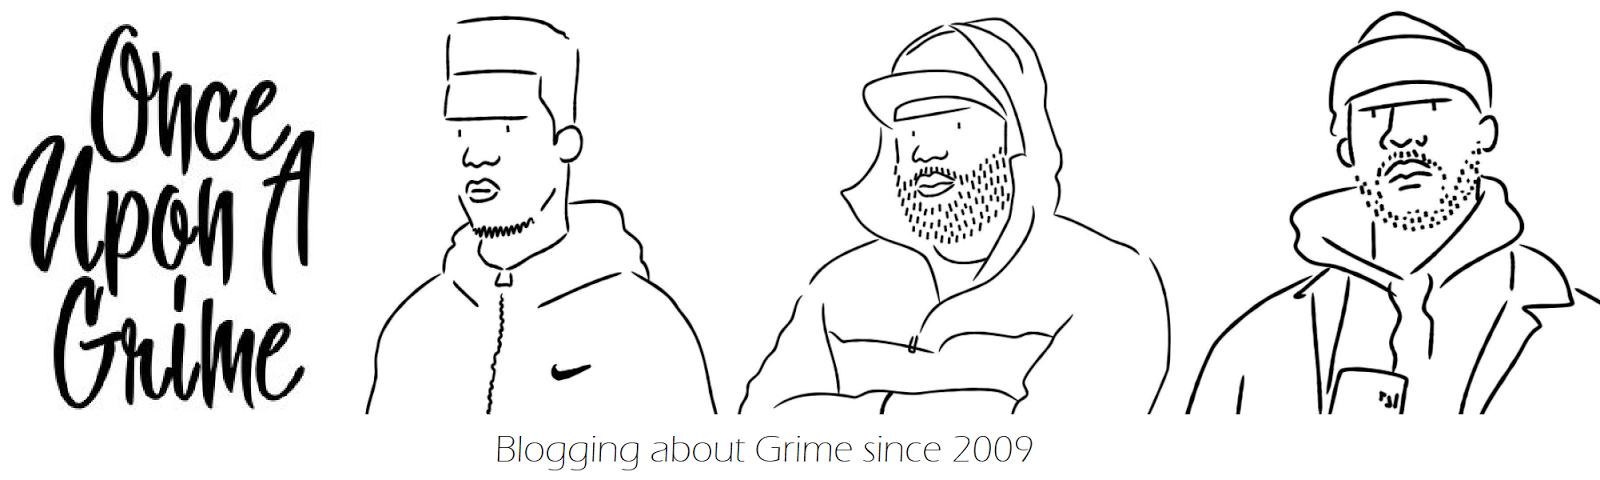 Once Upon A Grime